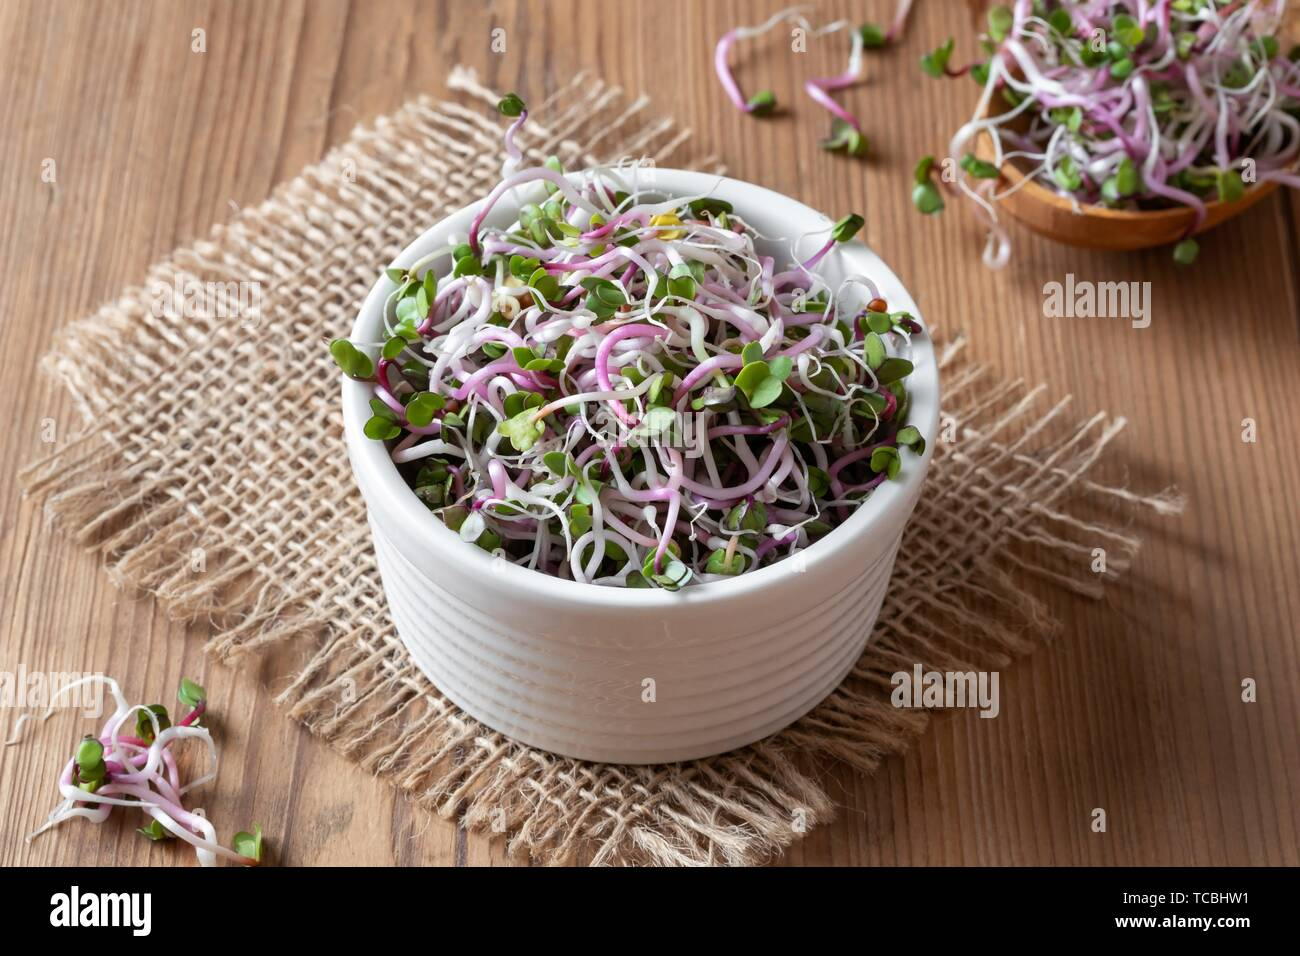 Fresh pink radish sprouts in a bowl. Stock Photo